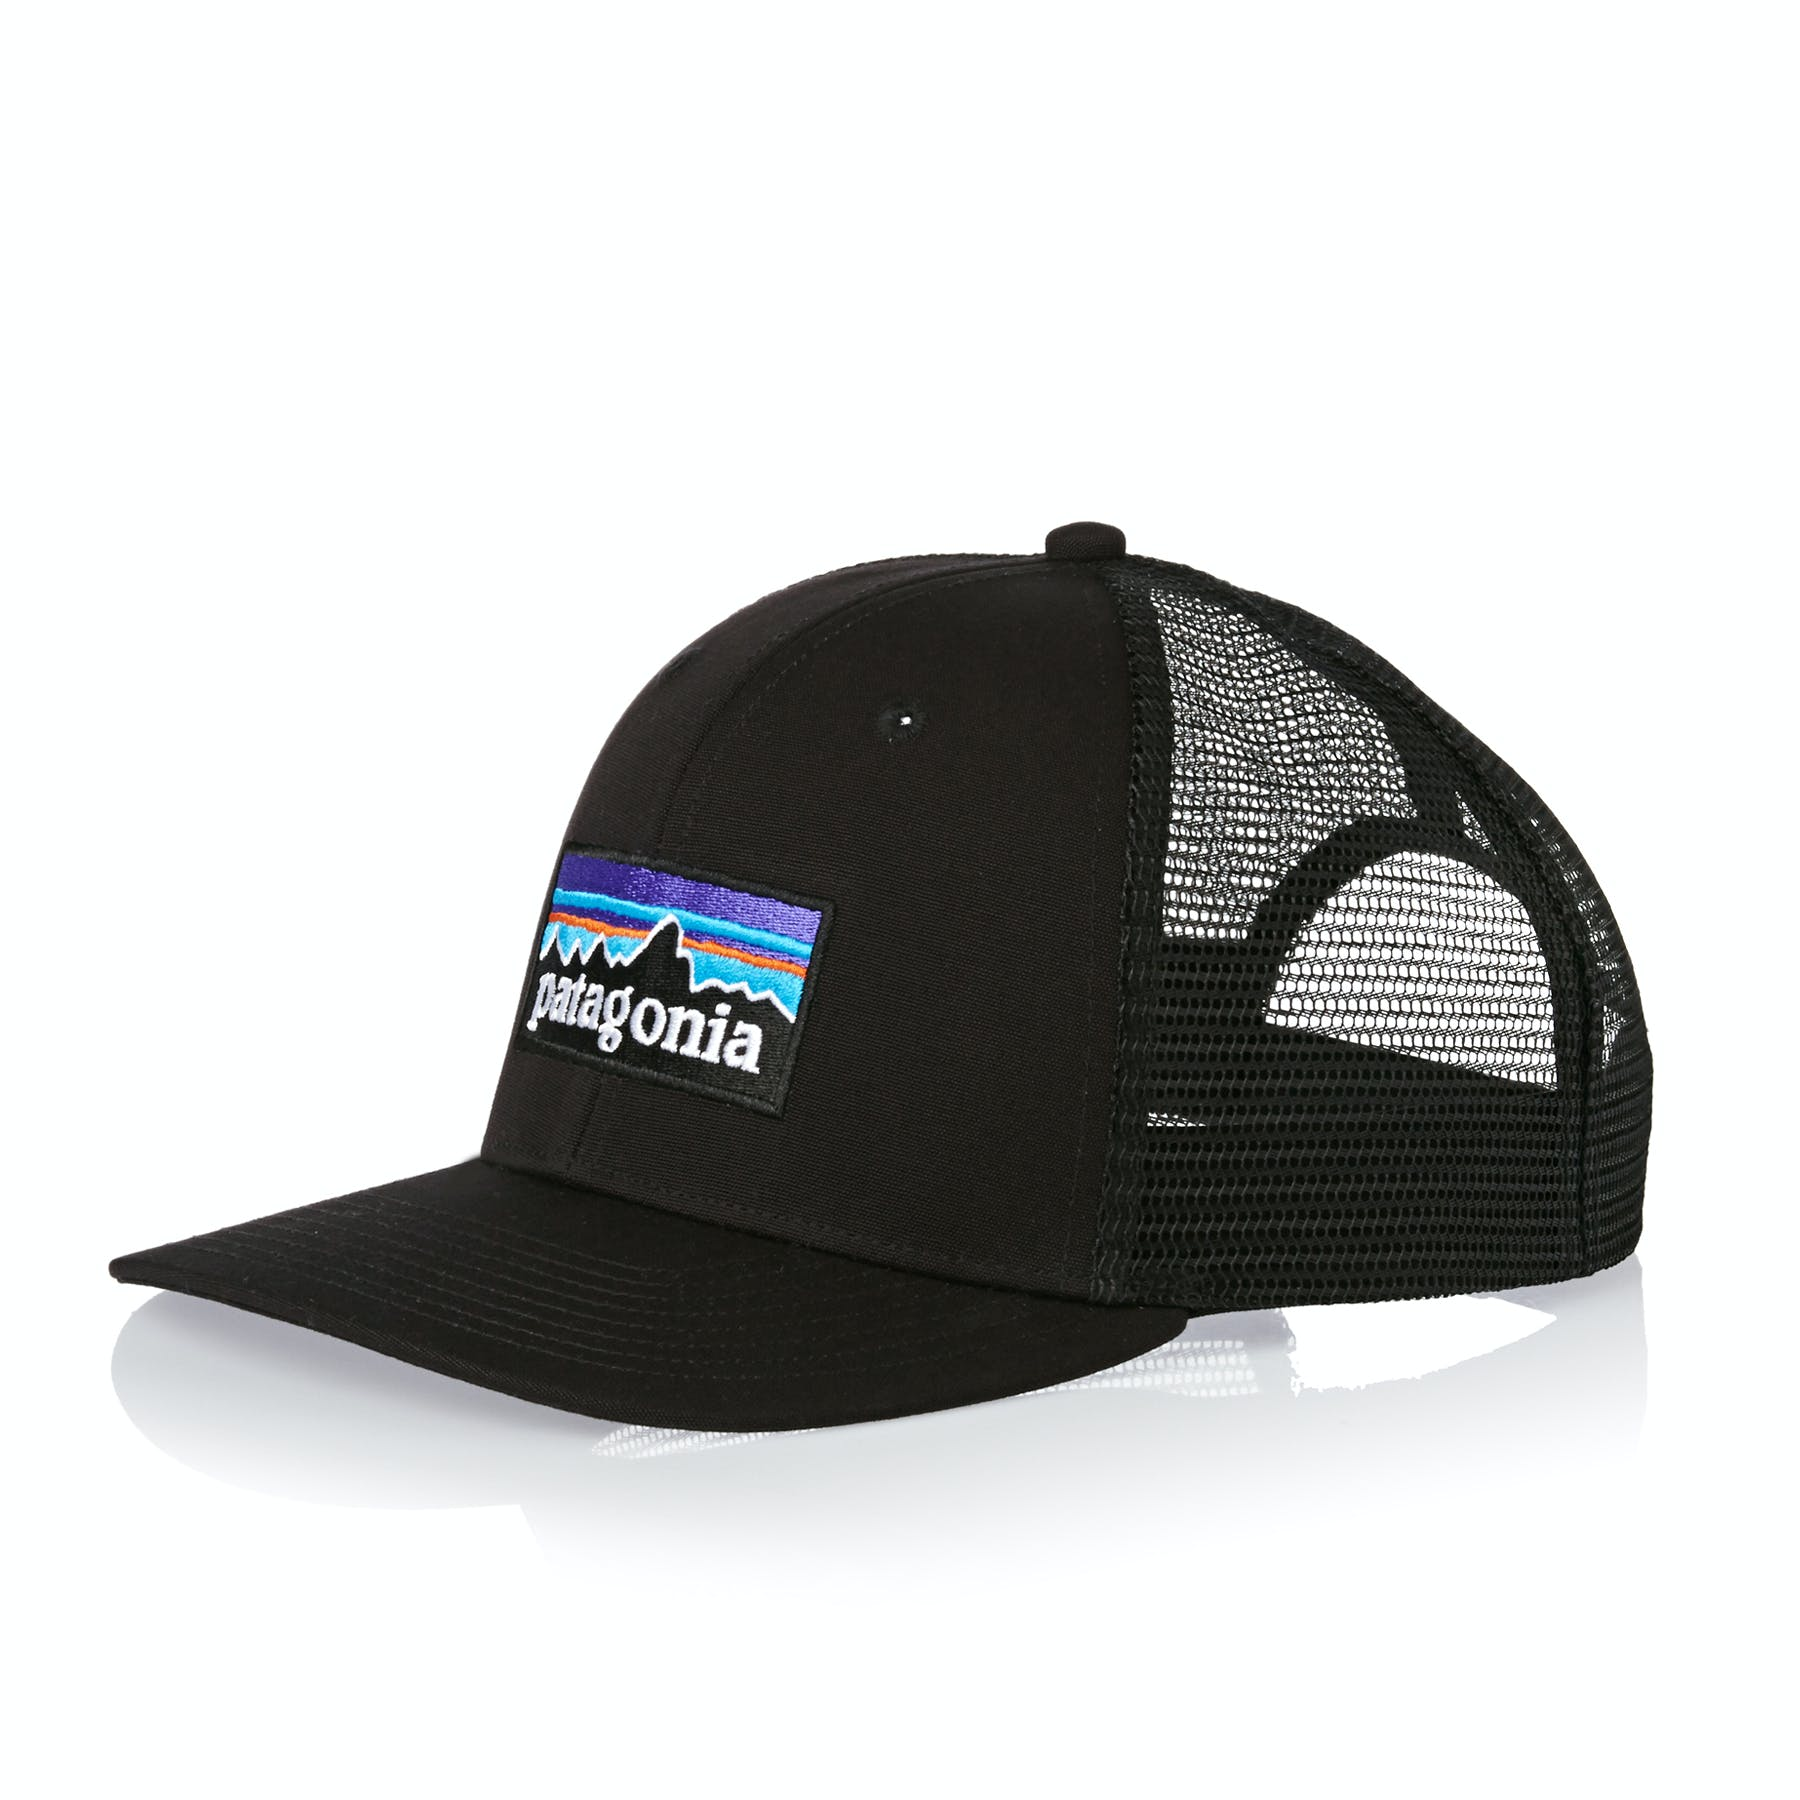 Patagonia P-6 Trucker Cap - Free Delivery options on All Orders from  Surfdome UK